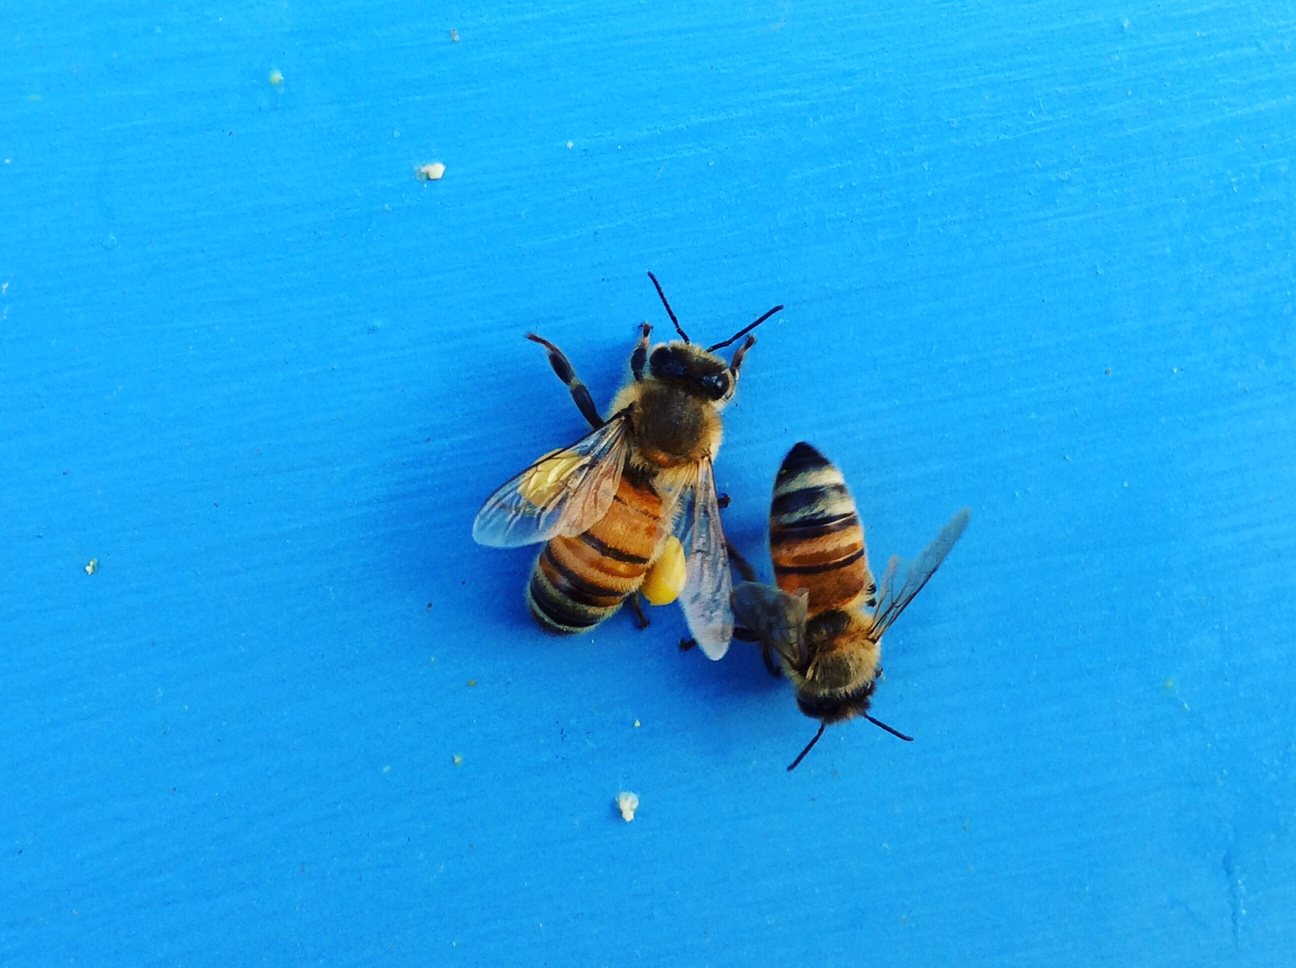 Bees returning to their hive laden with pollen, photos by Chris Belardi.